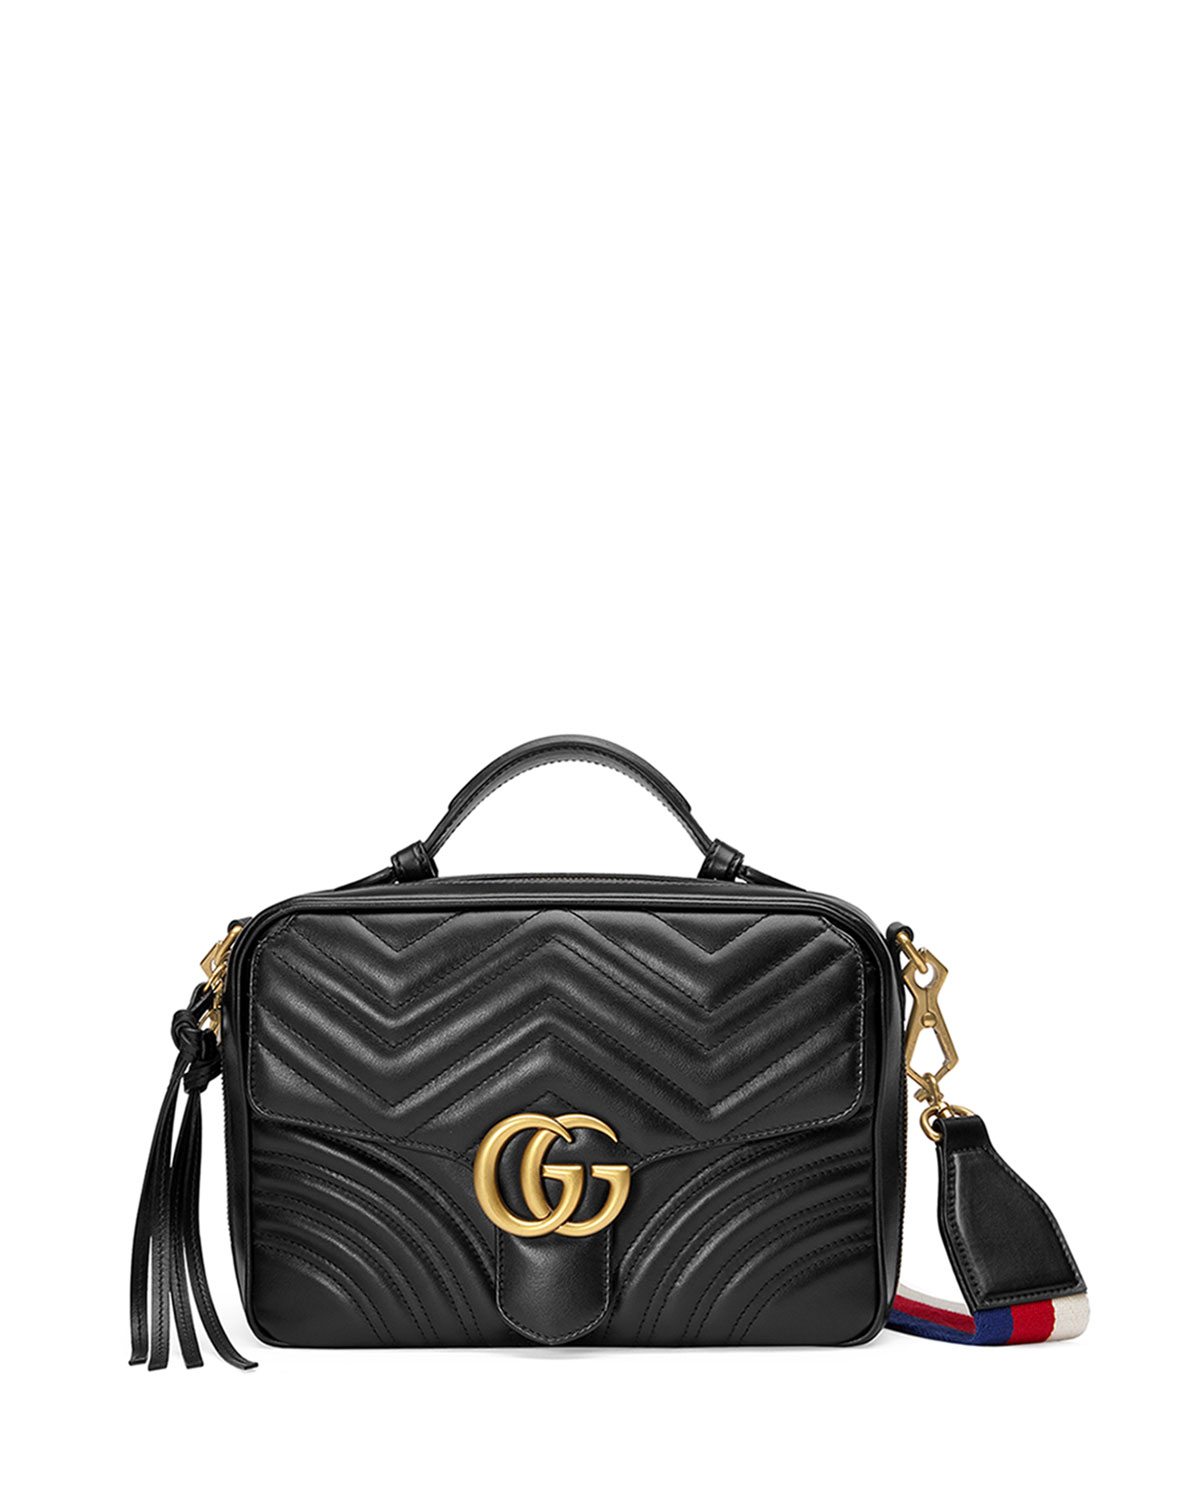 c8824f97ca8b GucciGG Marmont Small Chevron Quilted Leather Top-Handle Camera Bag with  Web Strap